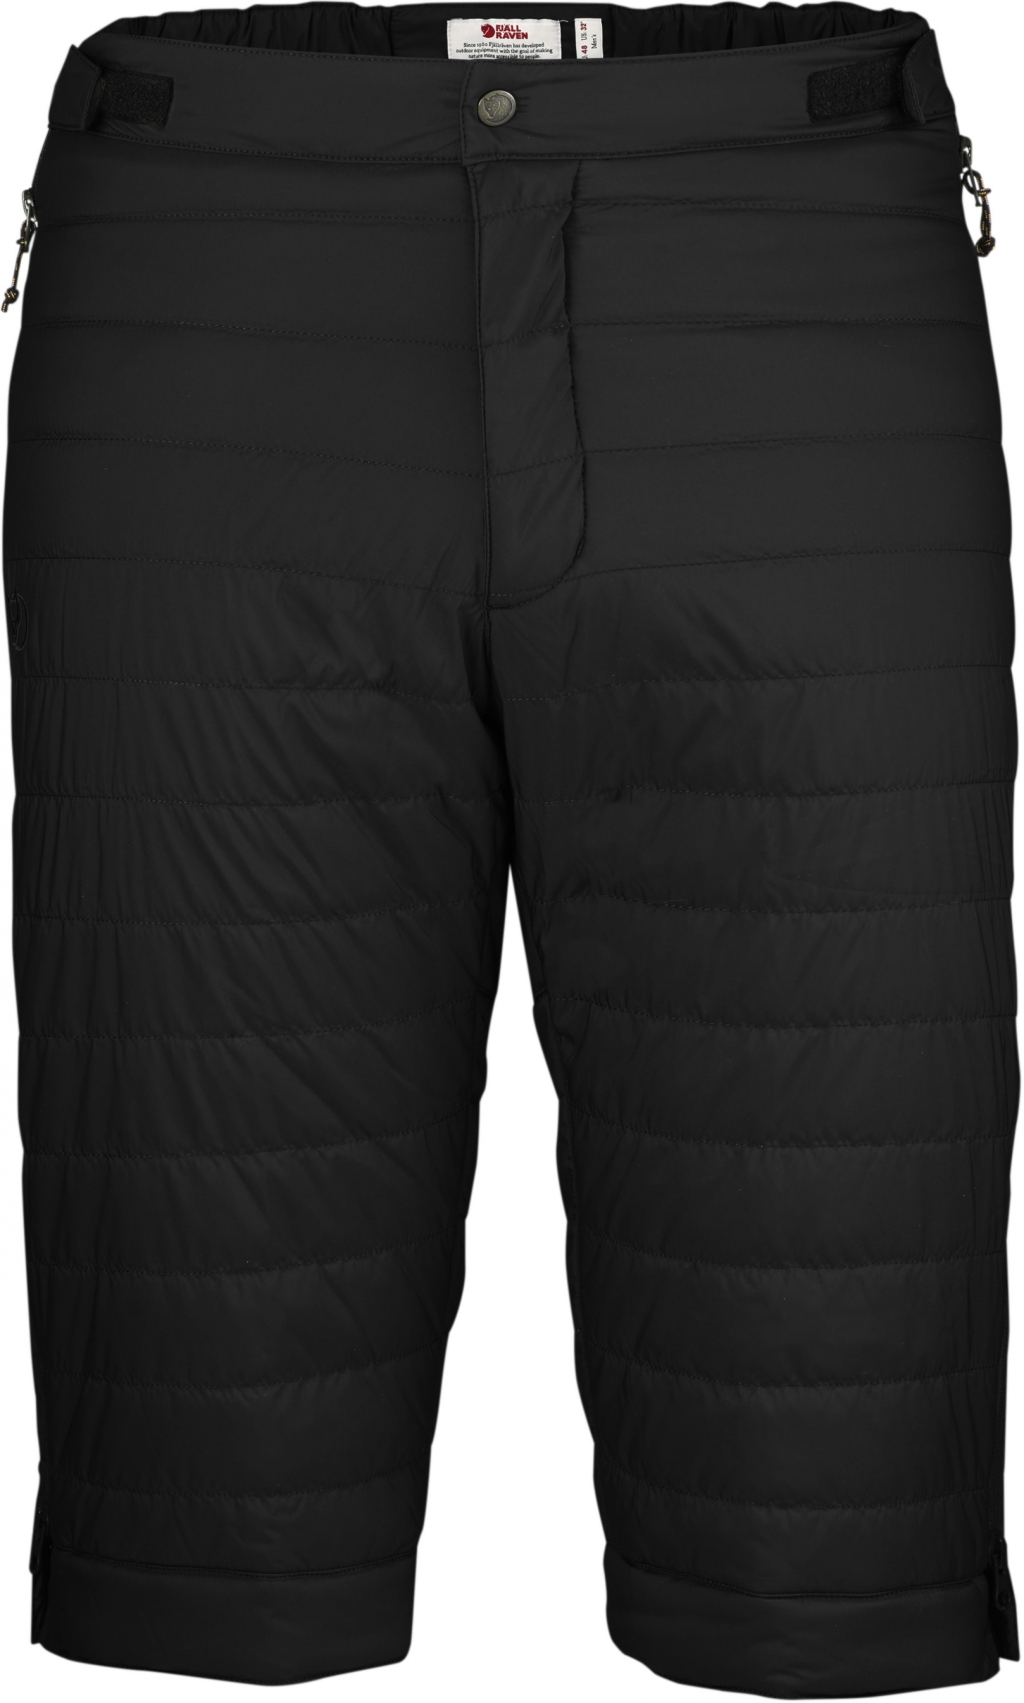 FjallRaven Keb Padded Knickers Black-30